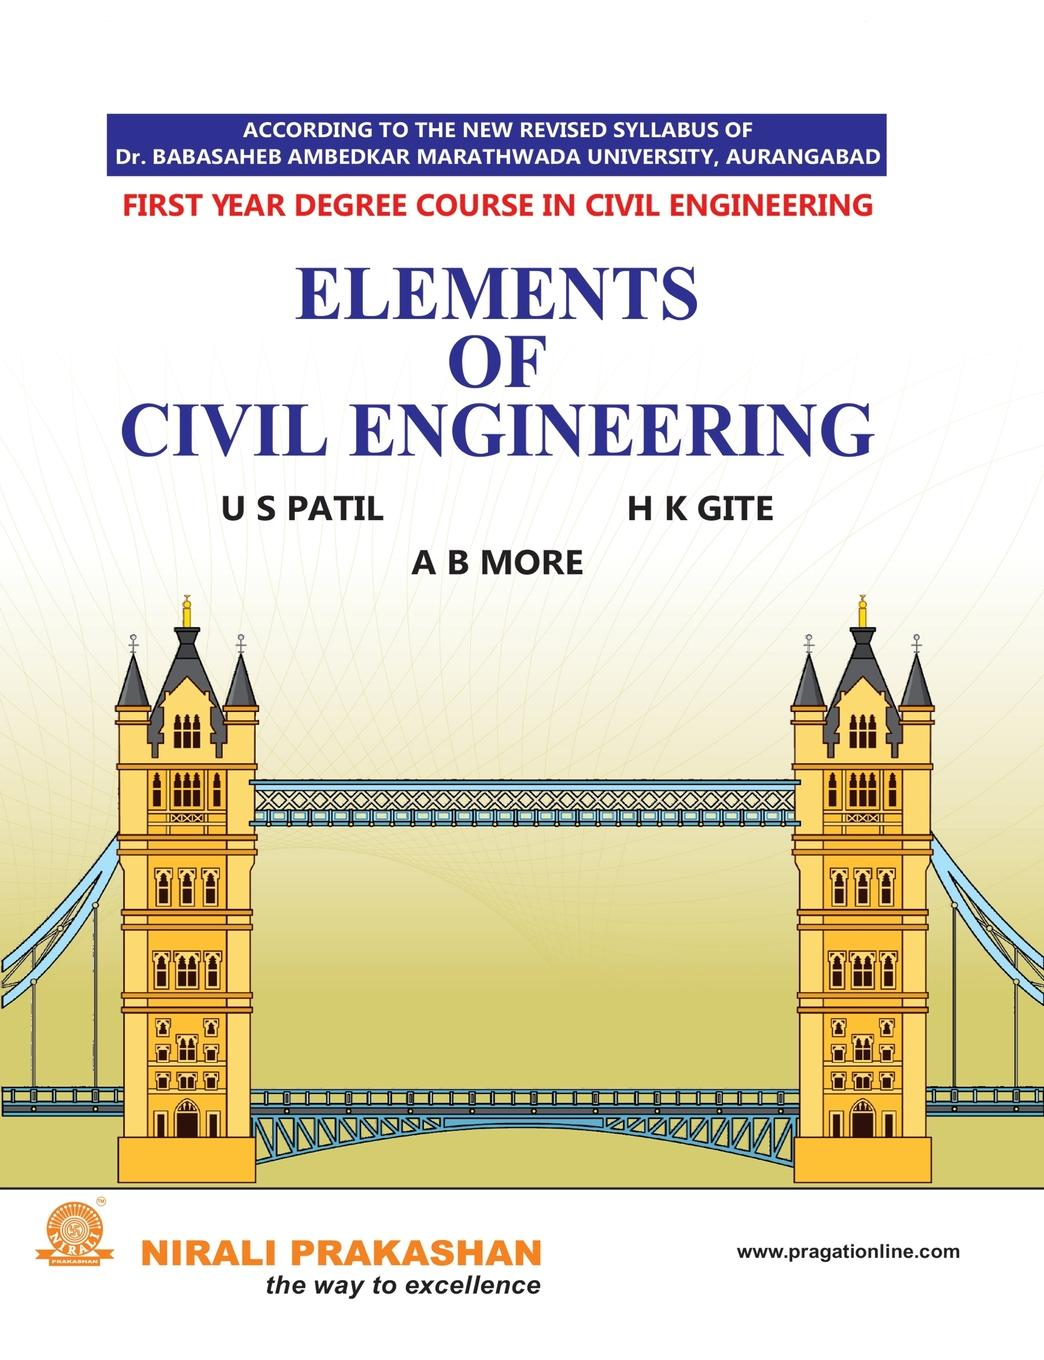 U S PATIL, H K GITE, A B MORE ELEMENTS OF CIVIL ENGINEERING peter williams managing measurement risk in building and civil engineering